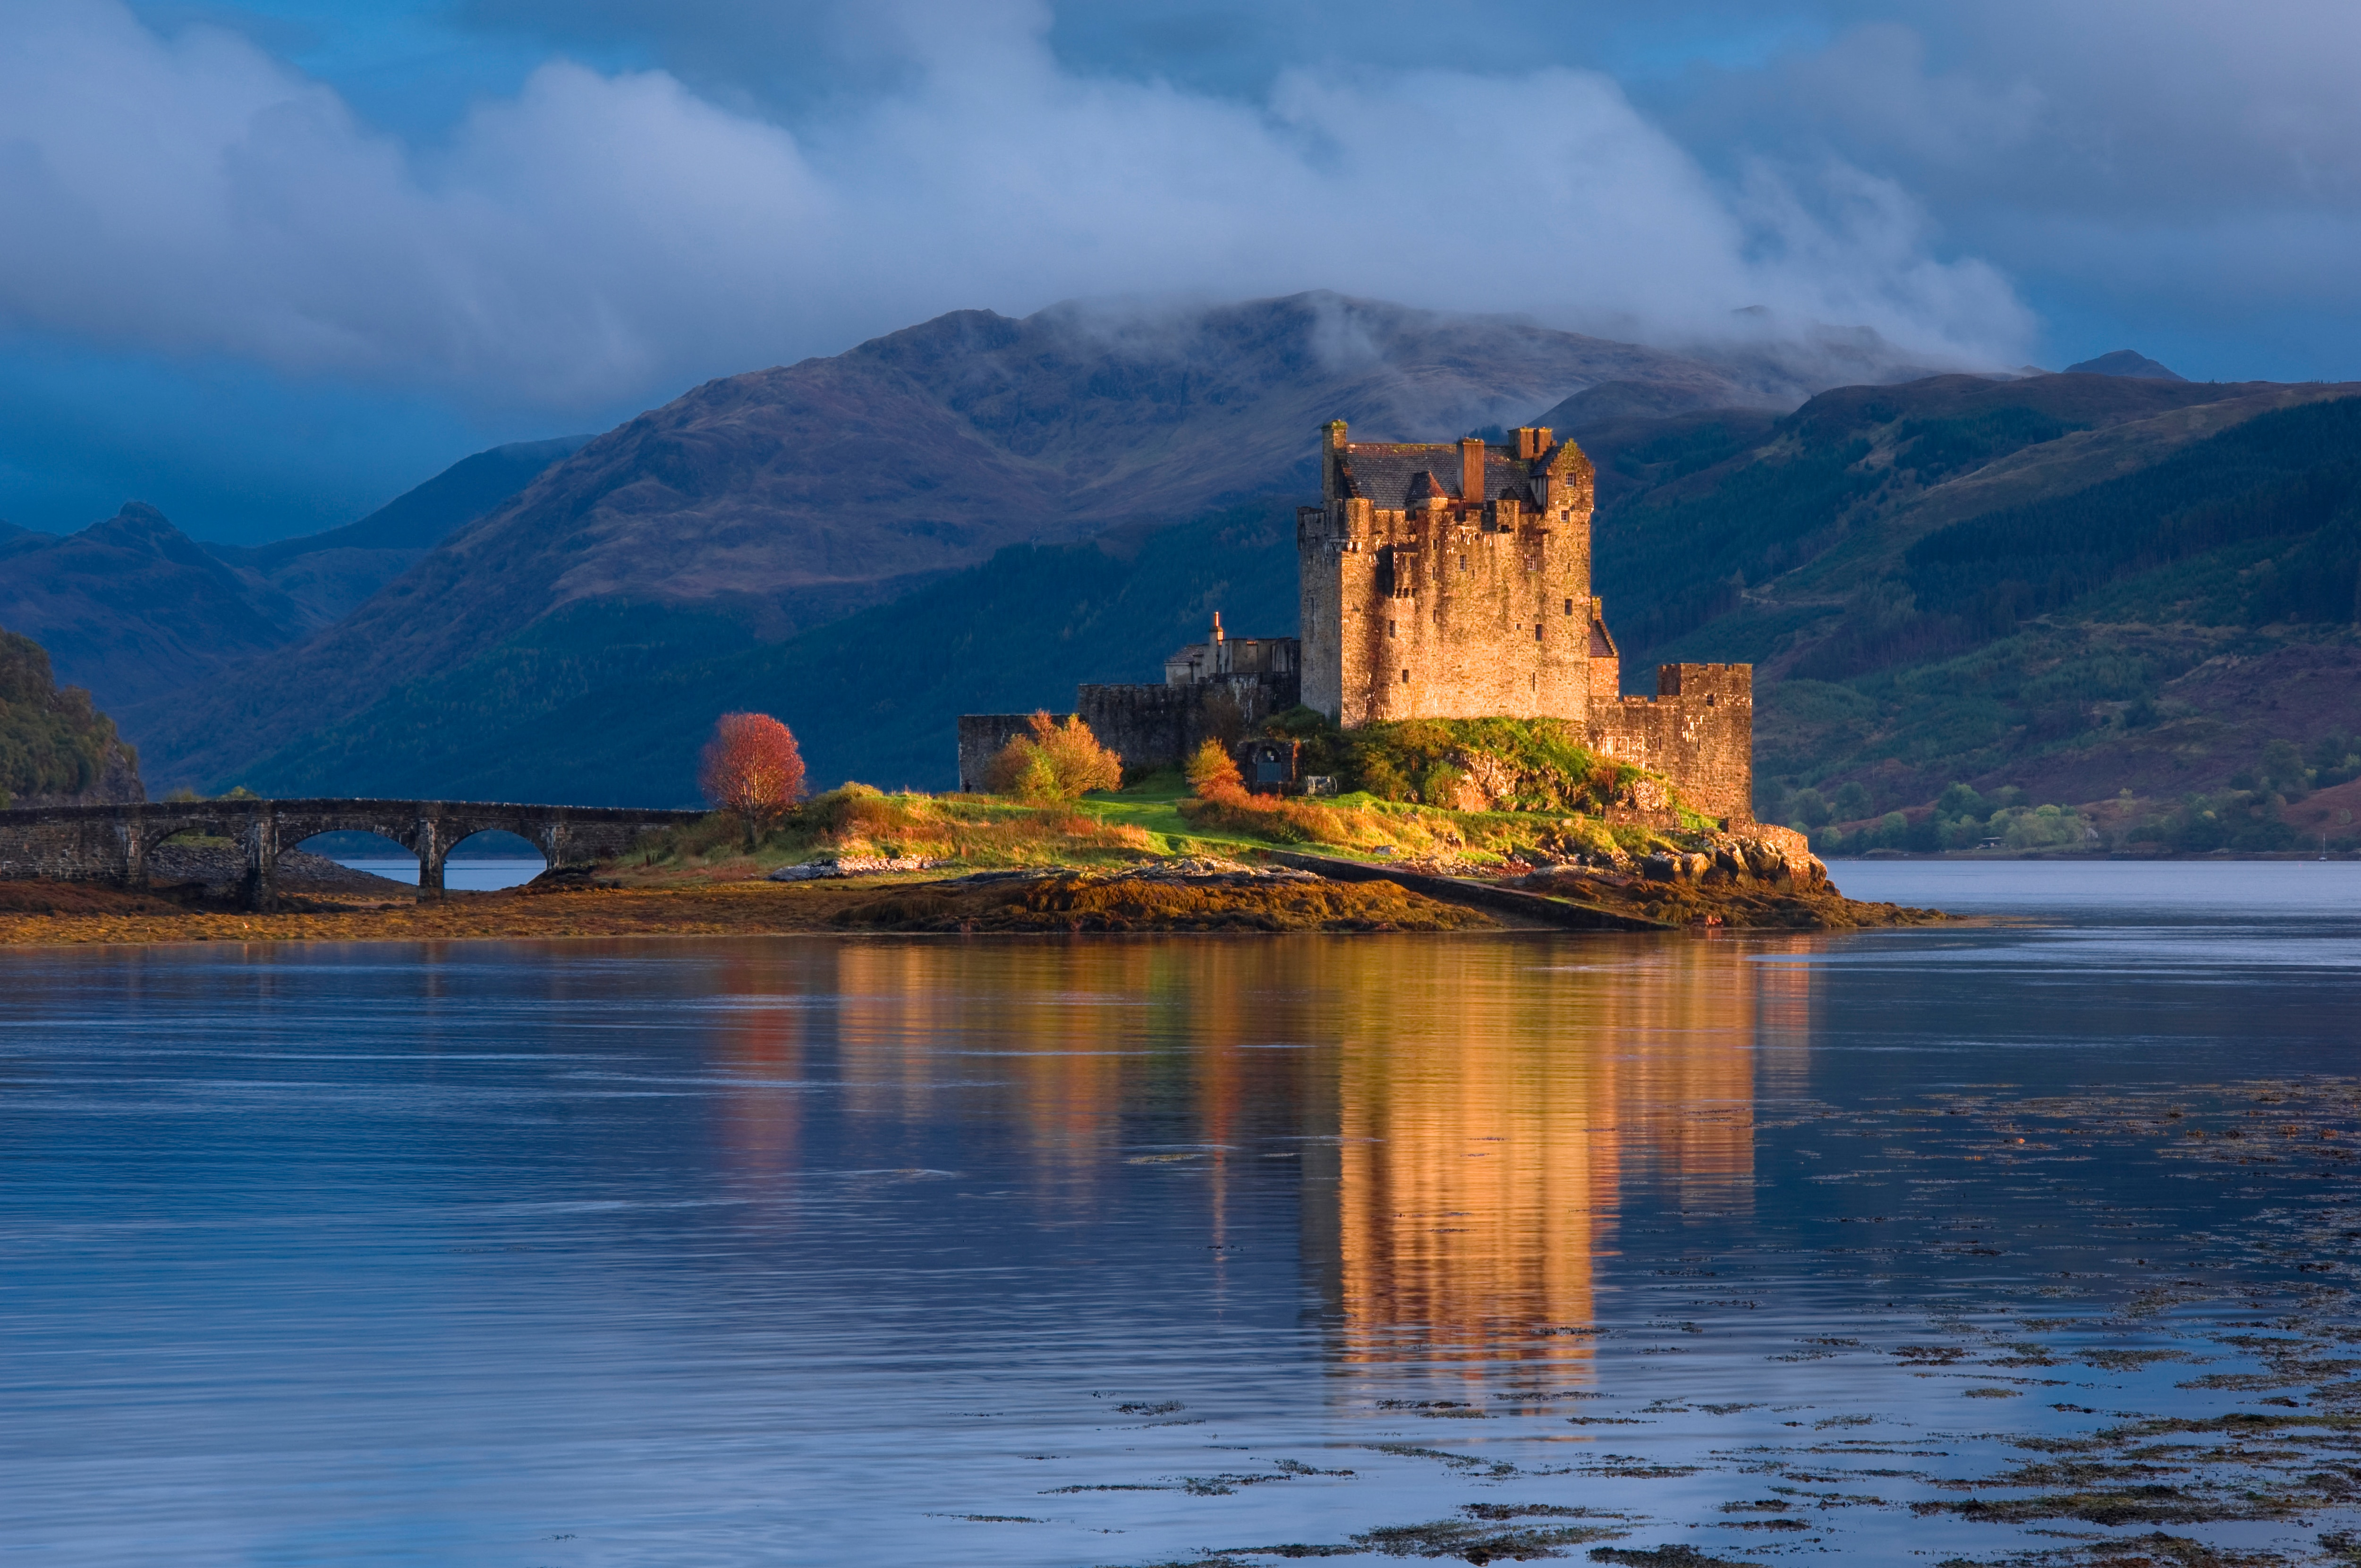 A castle in the Scottish Highlands.